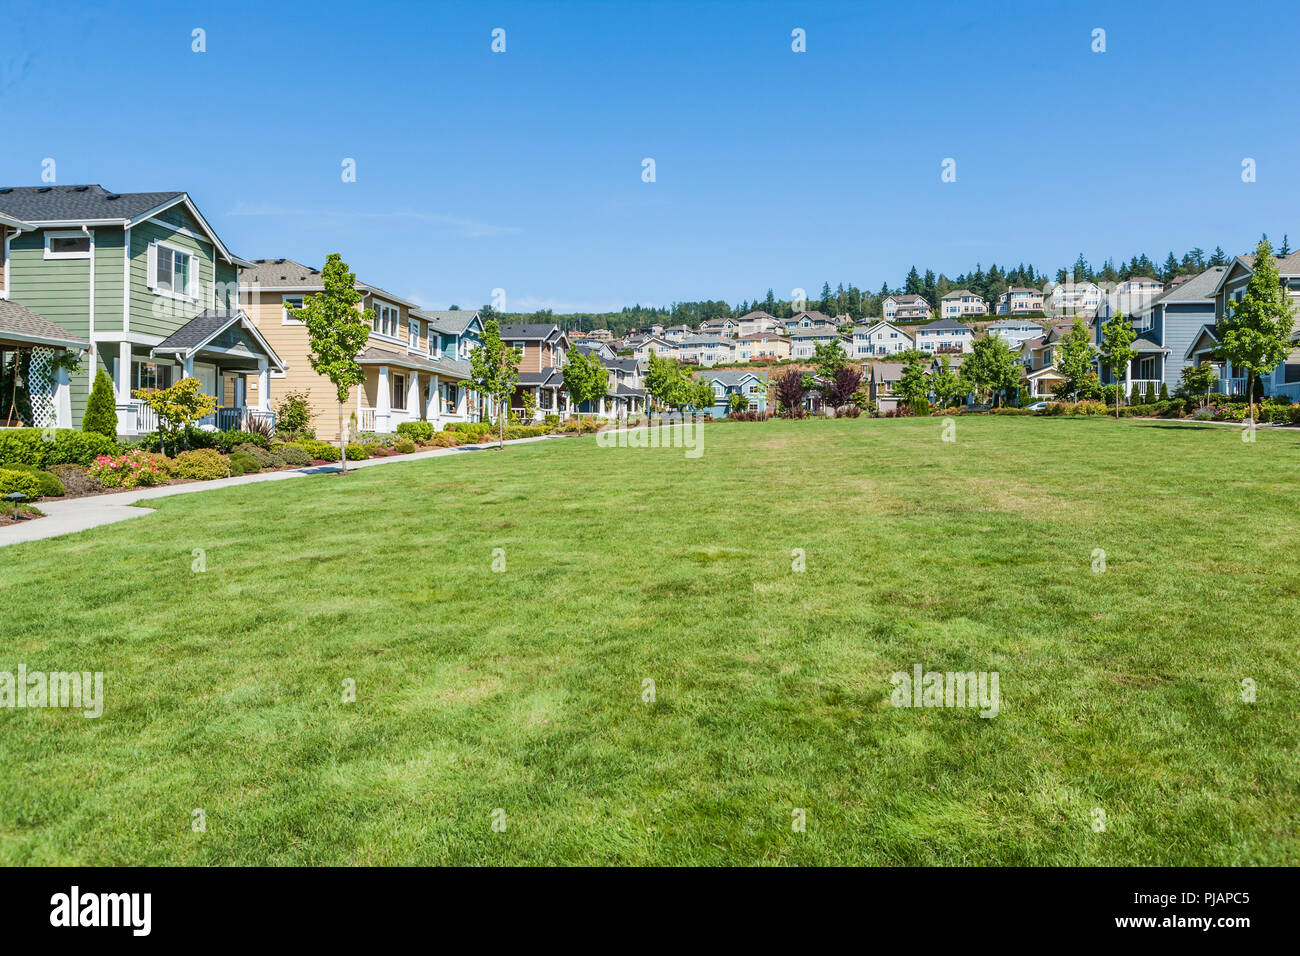 A housing development in the Issaquah Highlands, Washington, USA - Stock Image